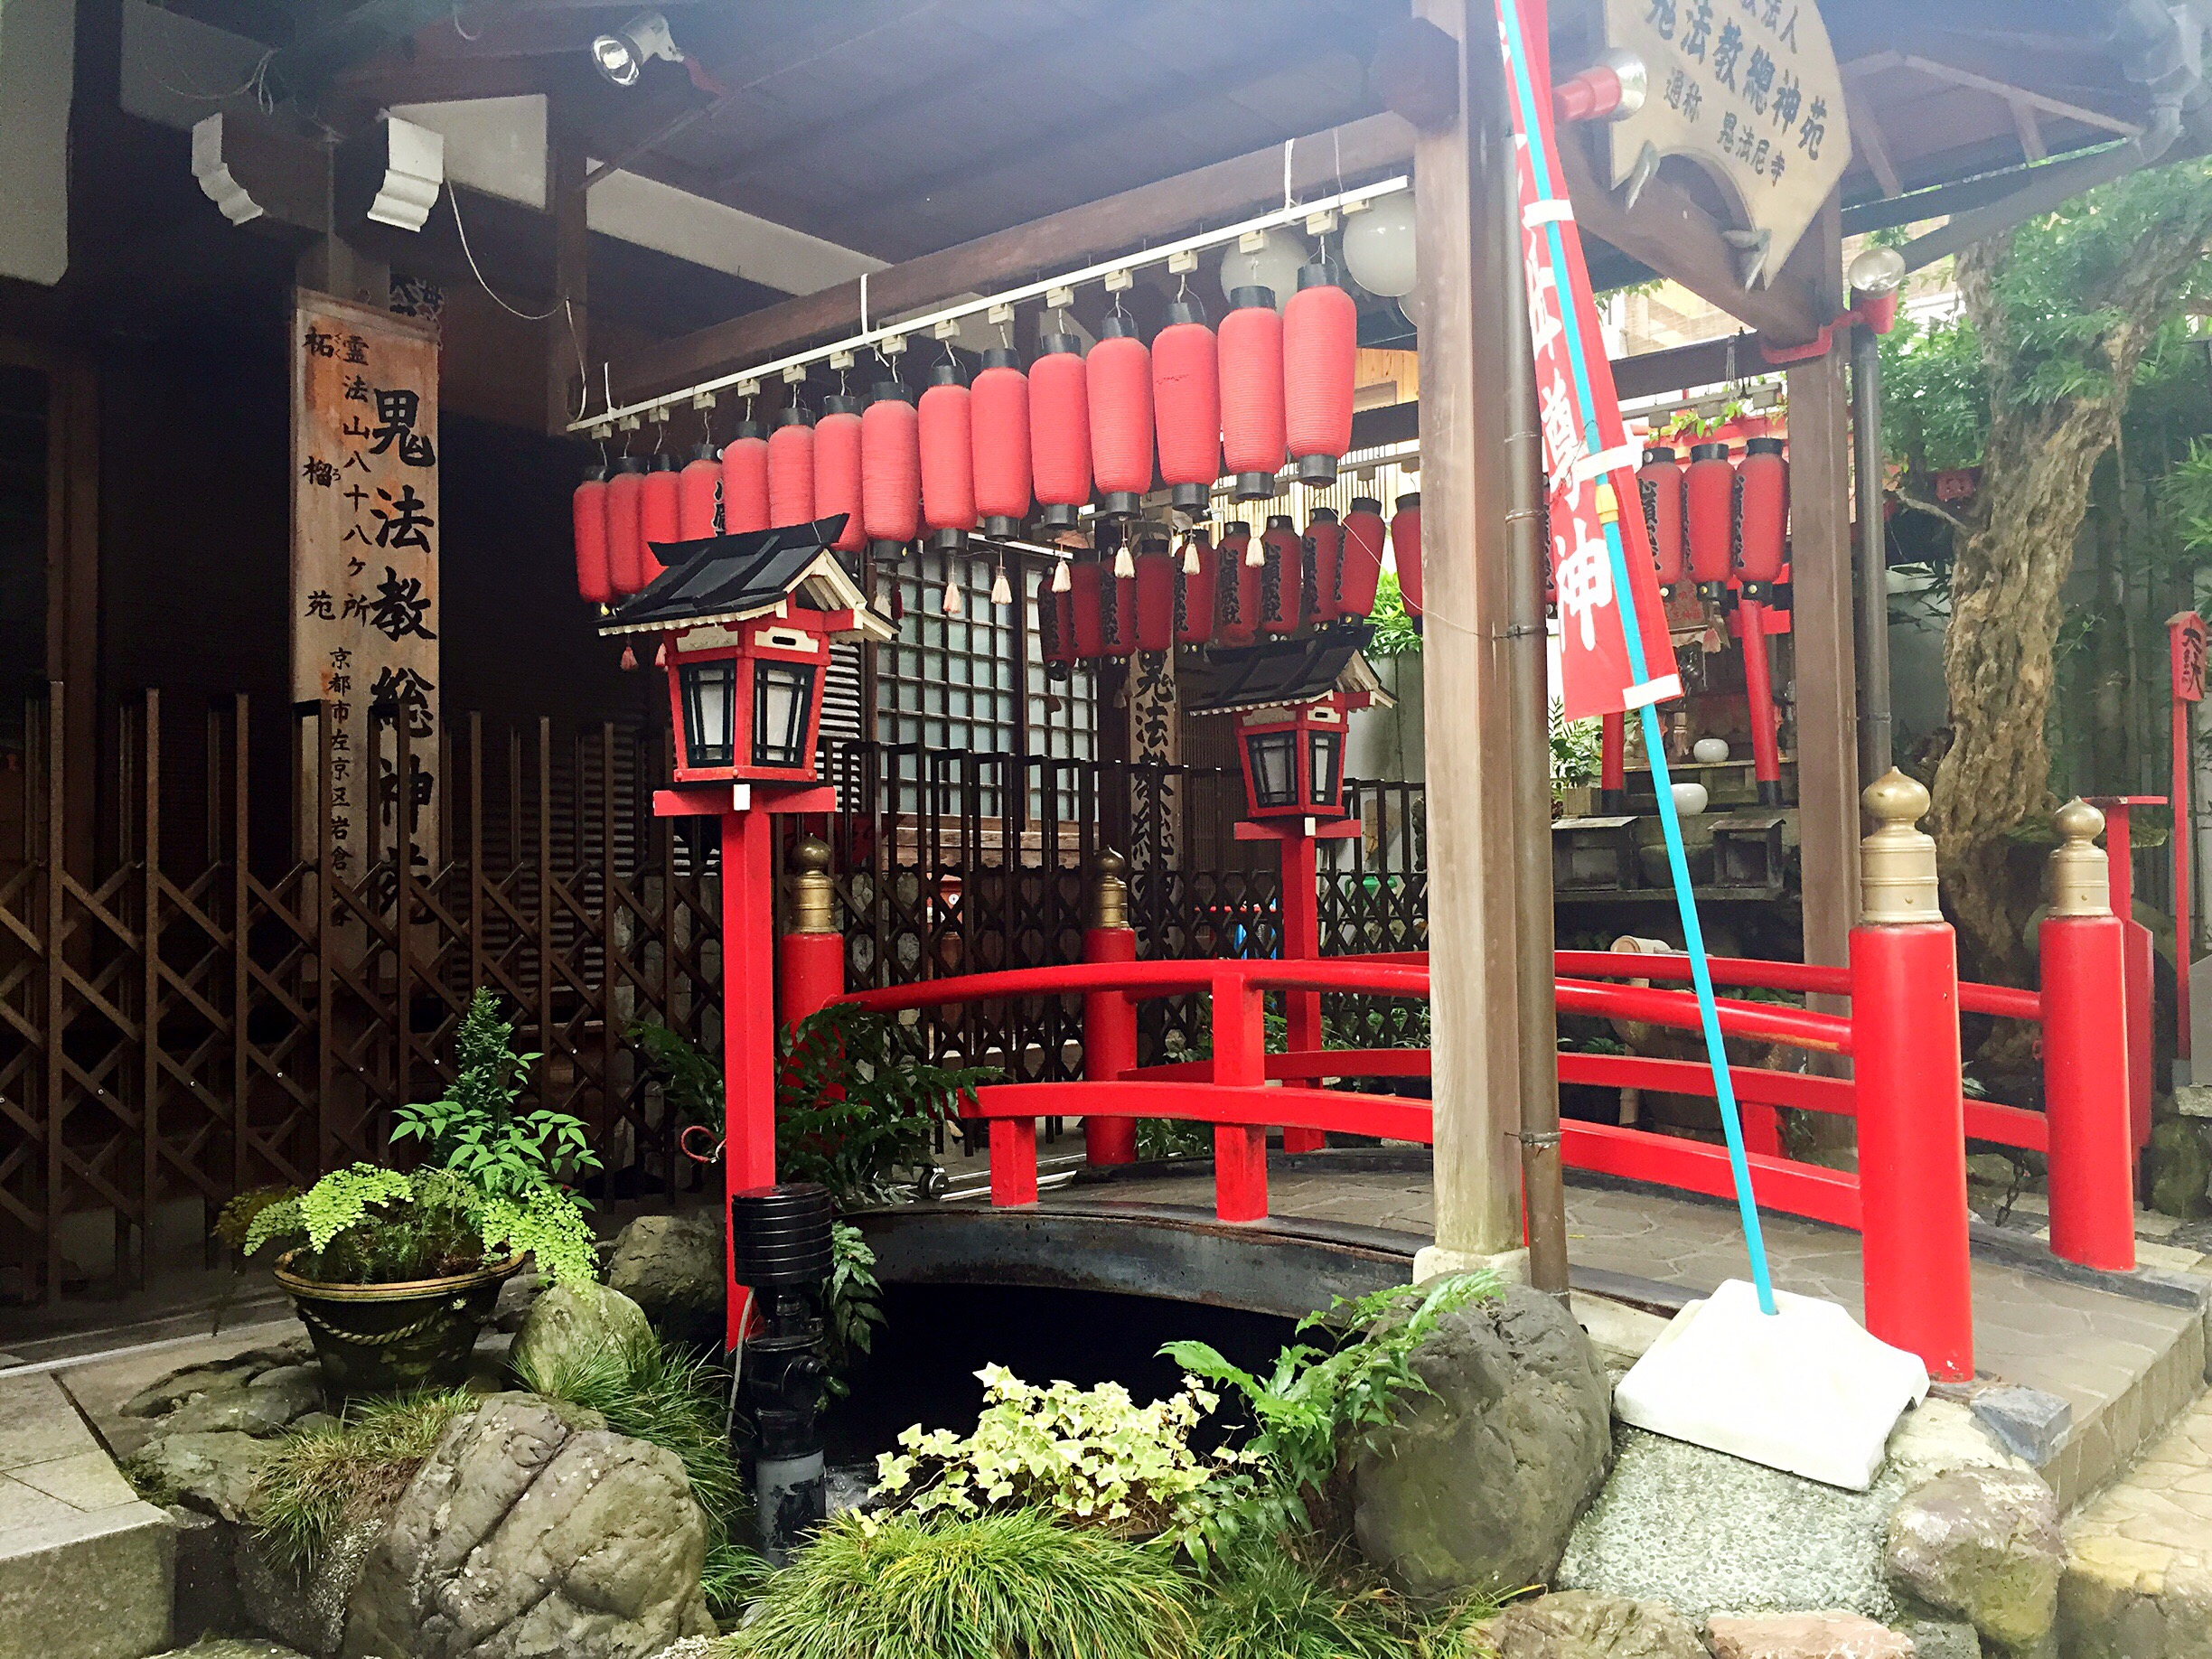 Small shop at shrine with bridge